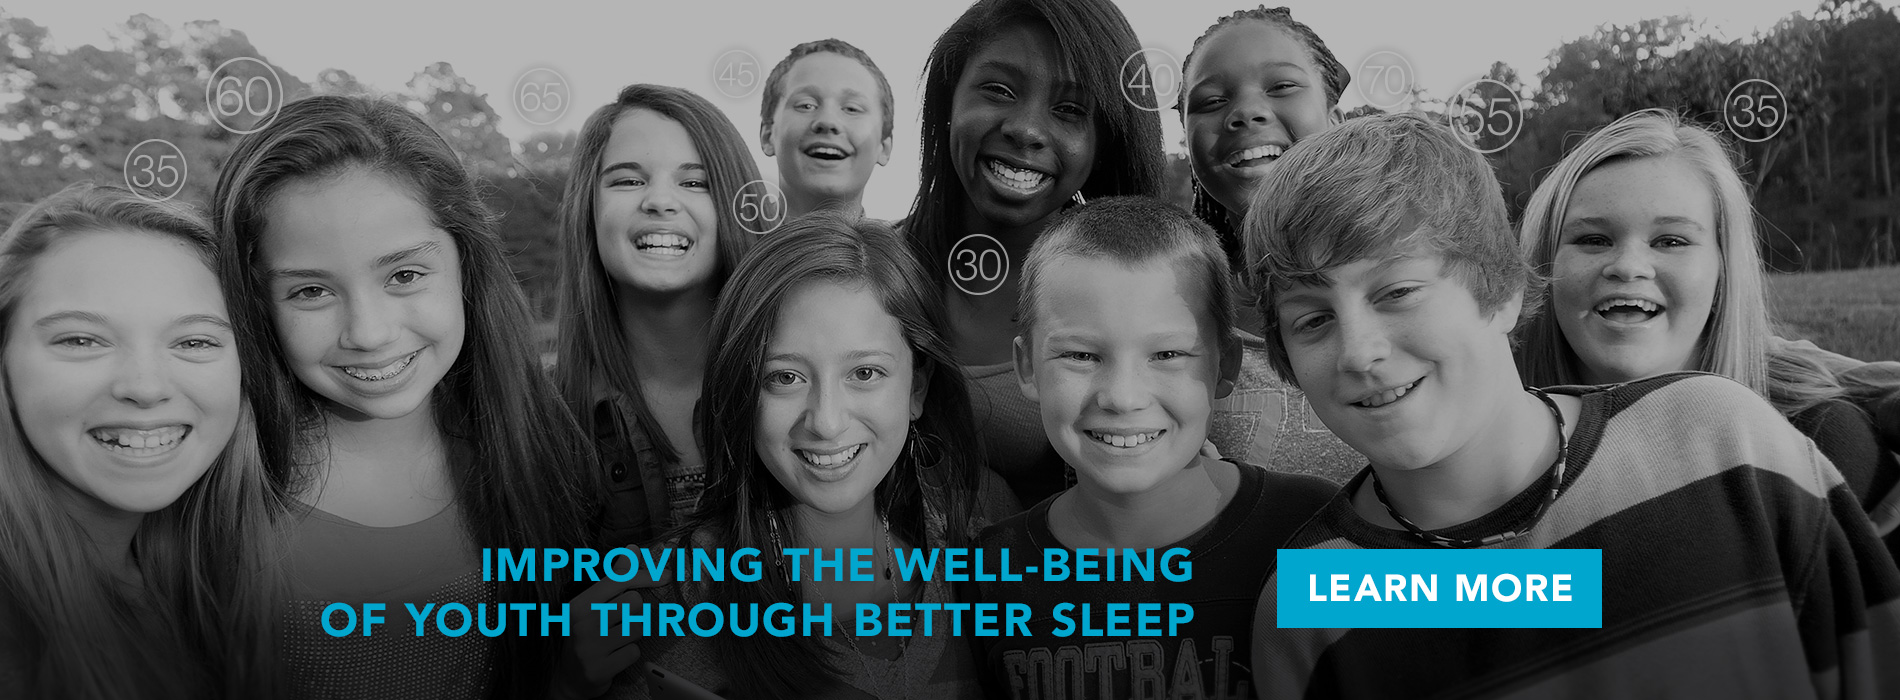 Improving the well-being of youth through better sleep.